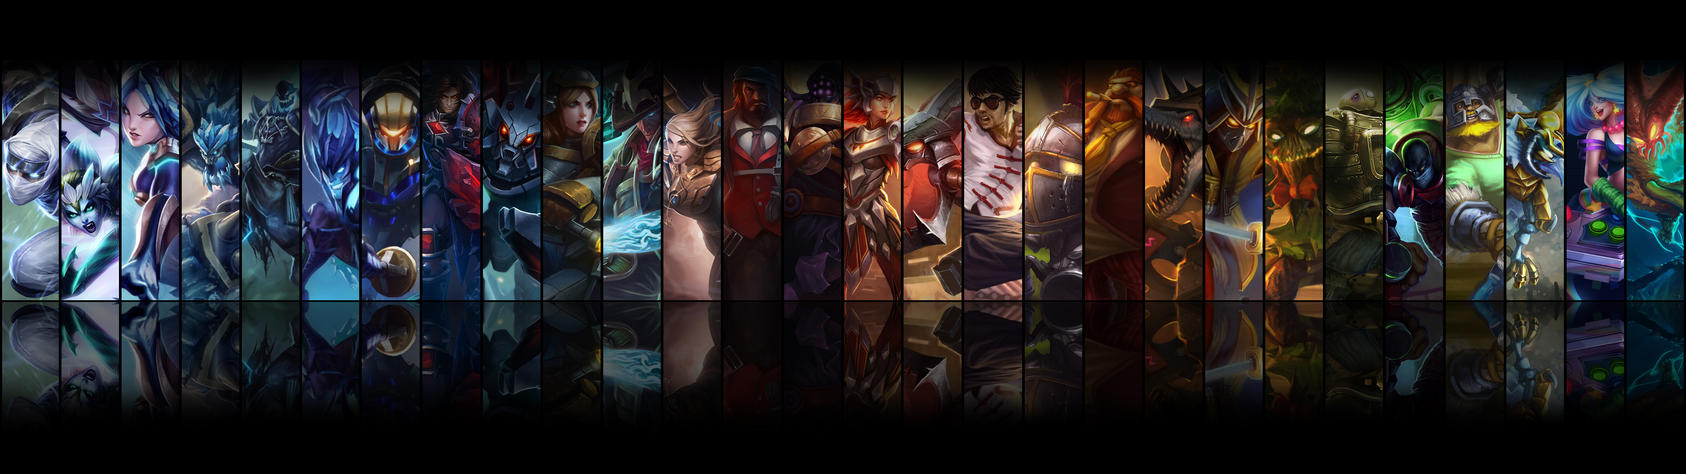 Dual Monitor Wallpaper League Of Legends Wallpapers Moving